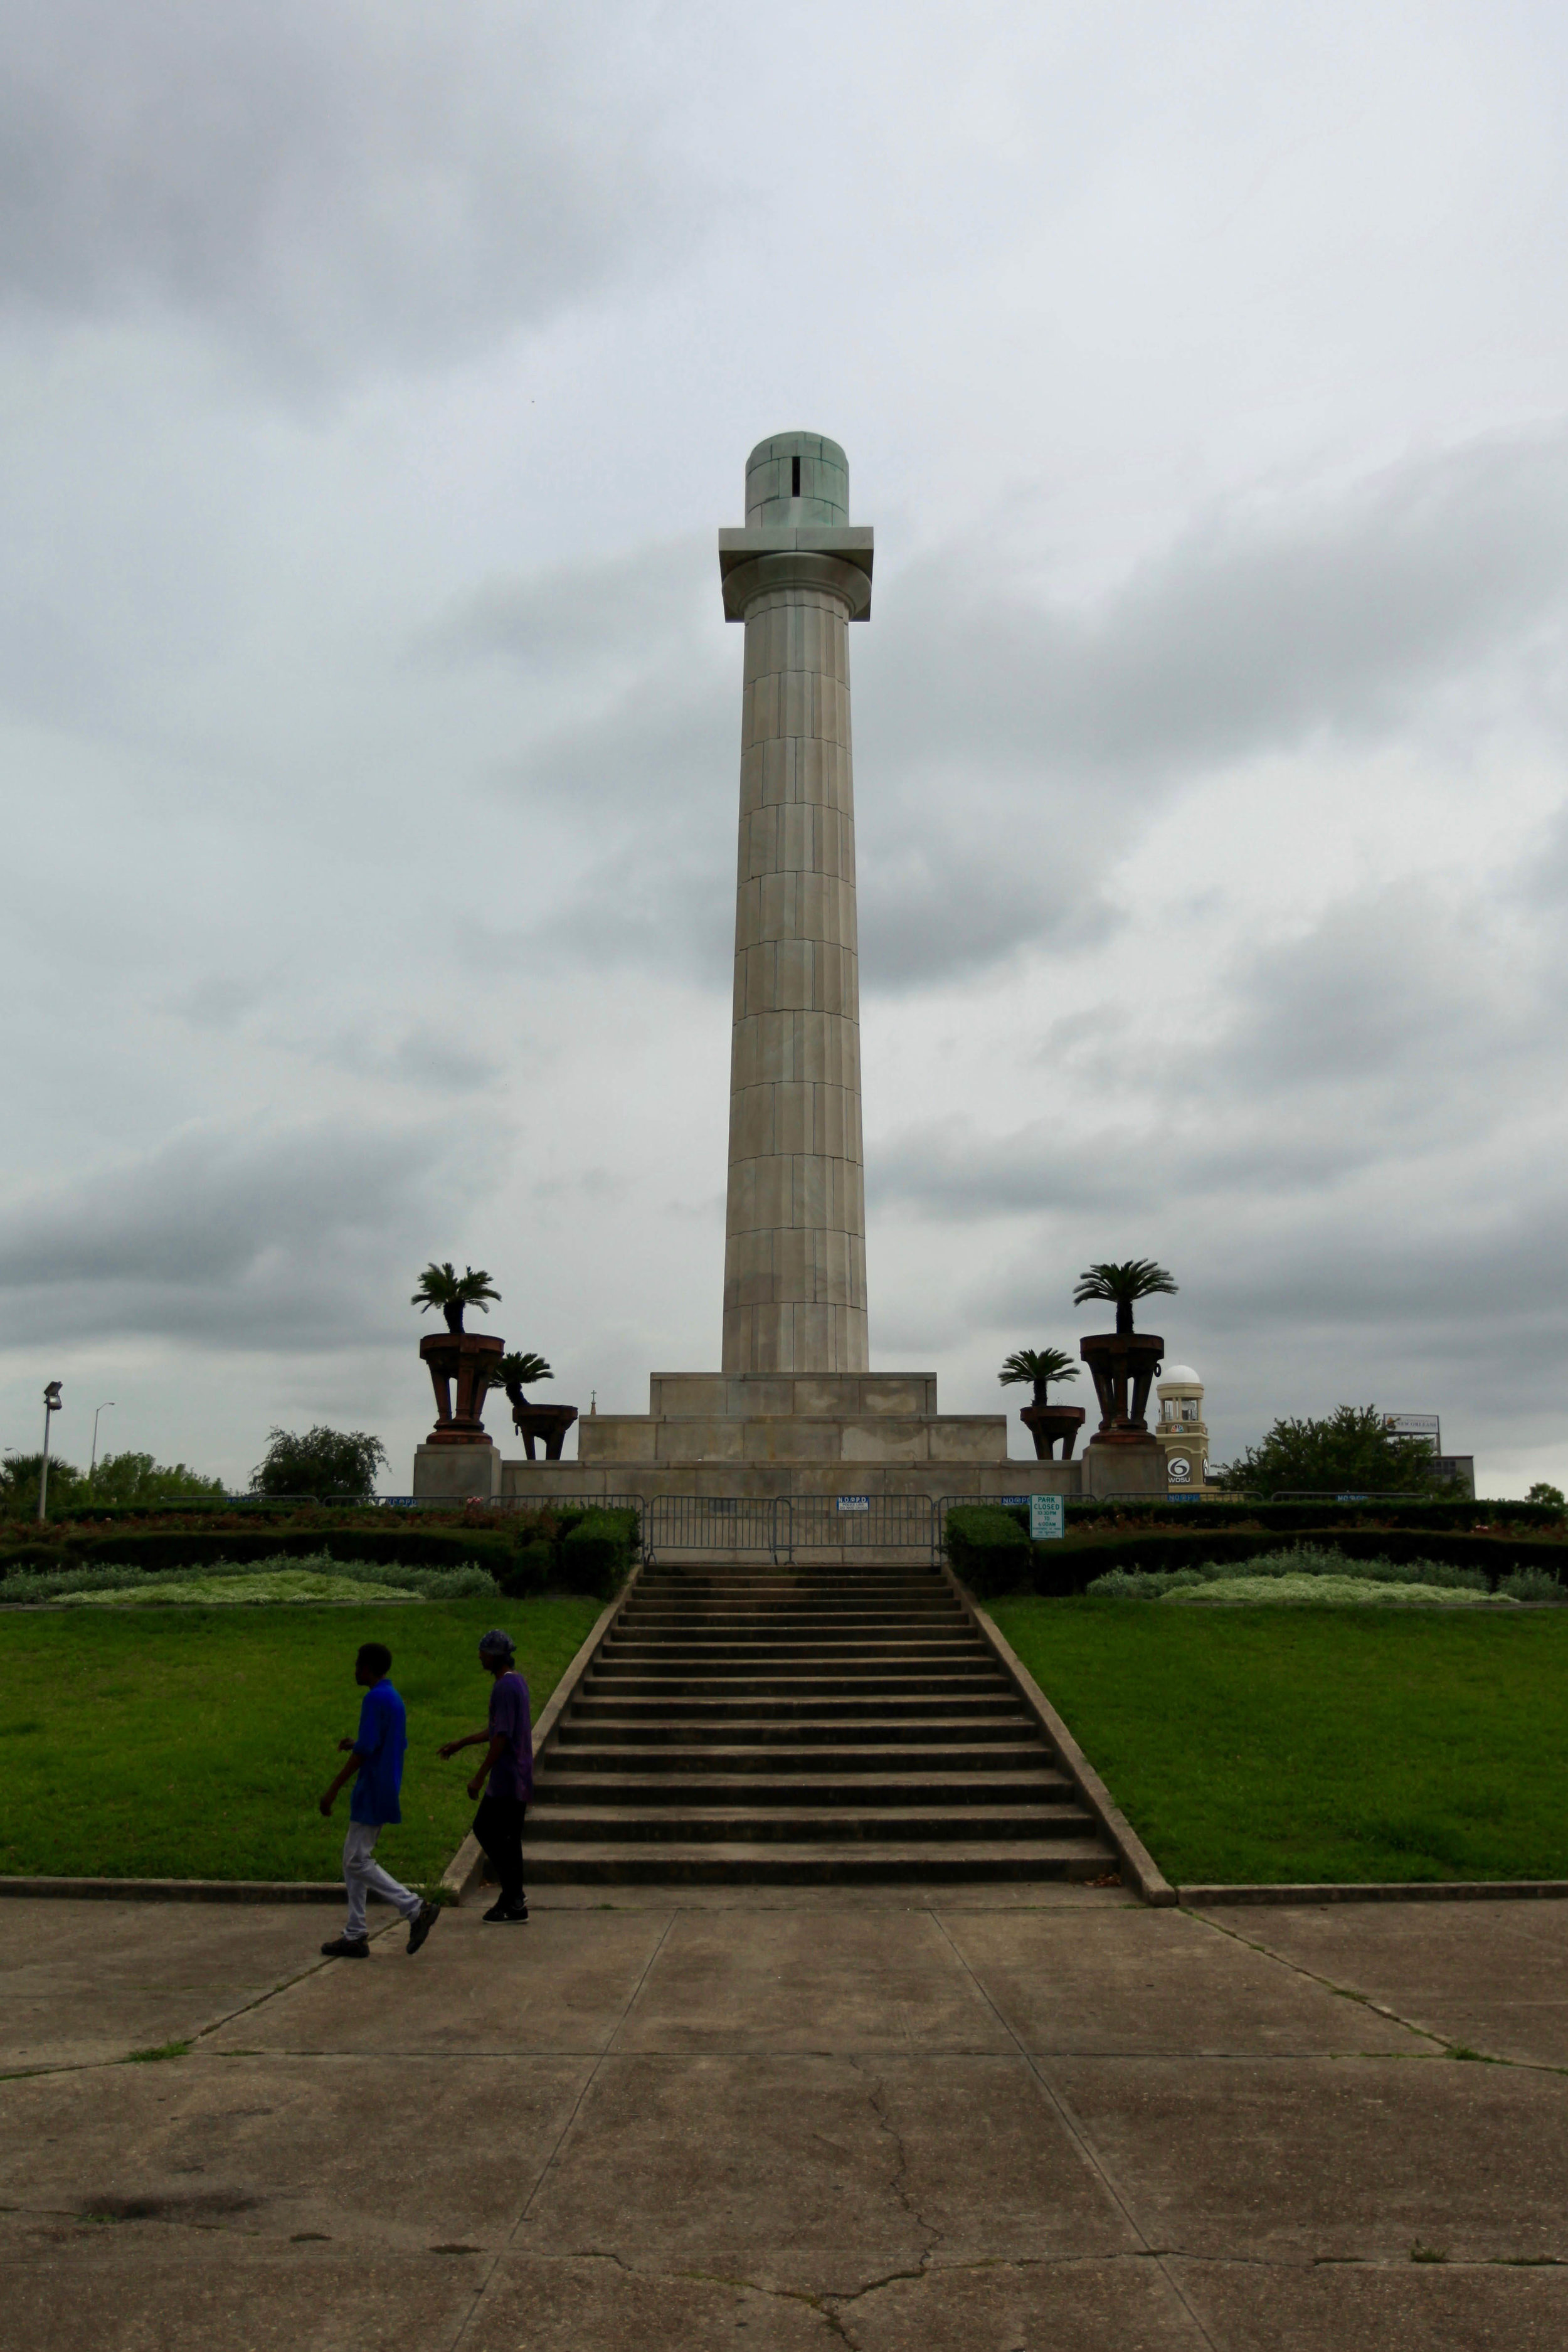 Lee Circle - with Lee's statue gone